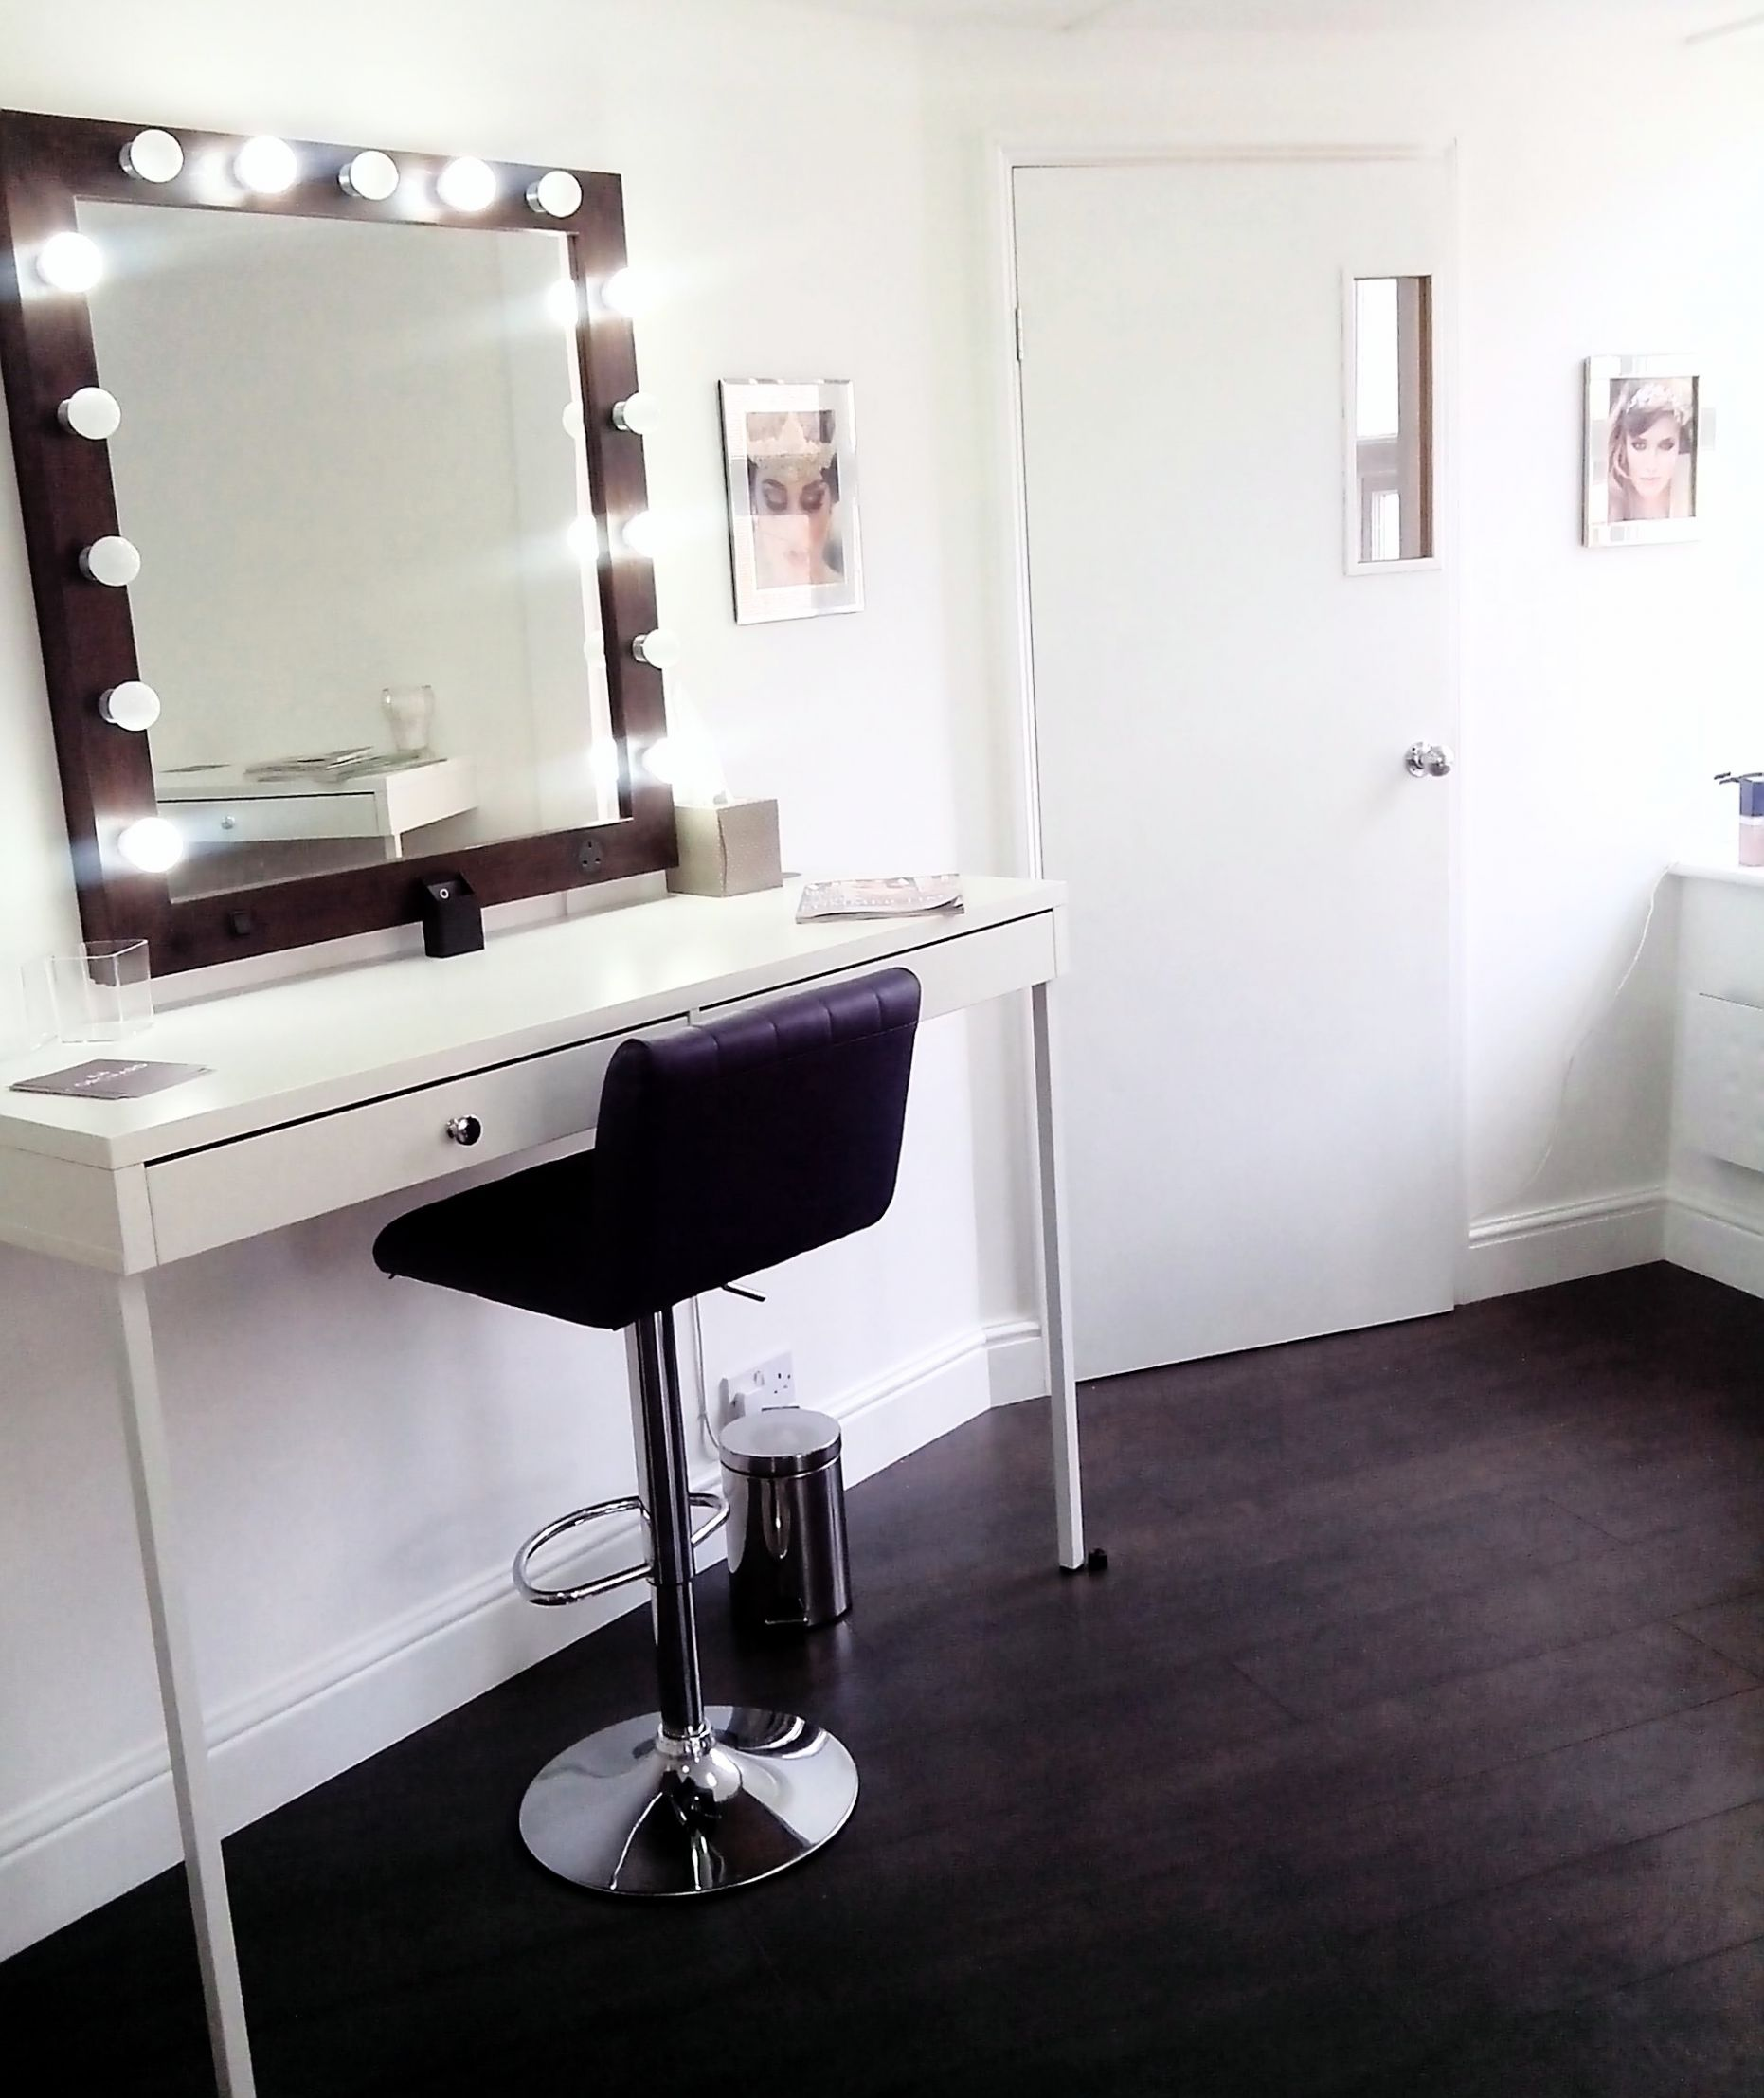 Home Makeup studio Ideas - Orchard Makeup - makeup room art ideas